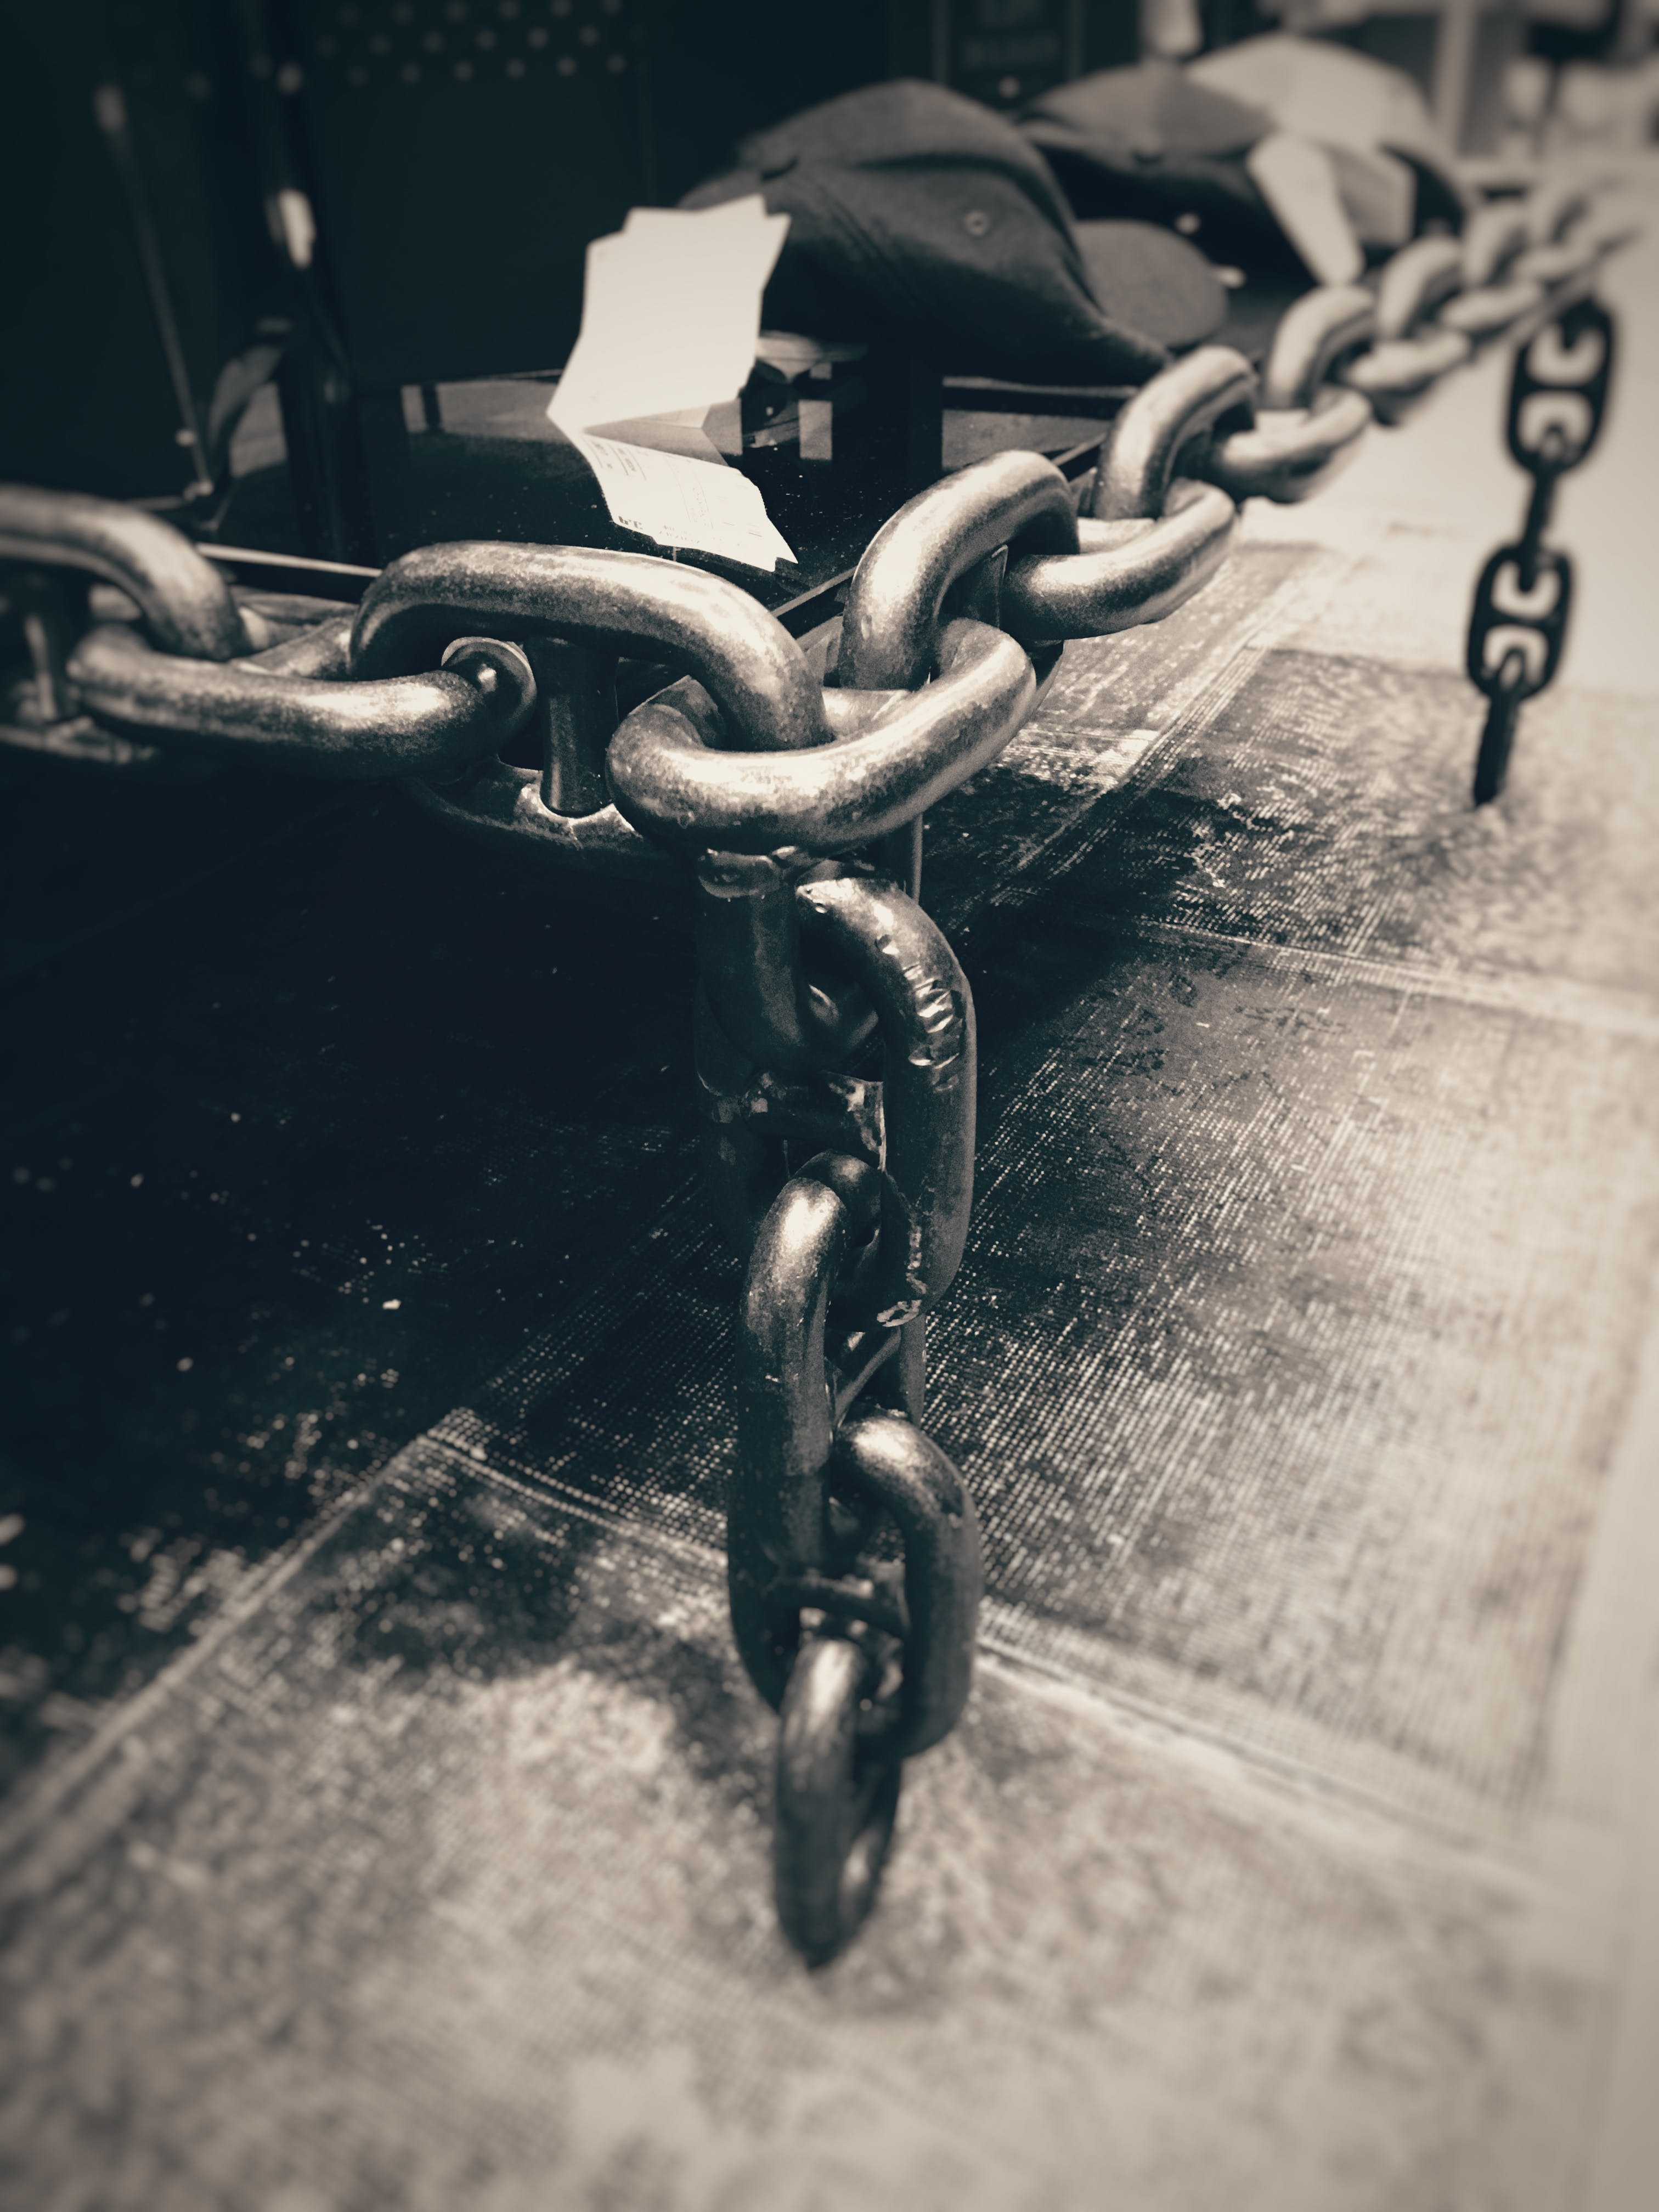 Steel Chains in Grayscale Photography